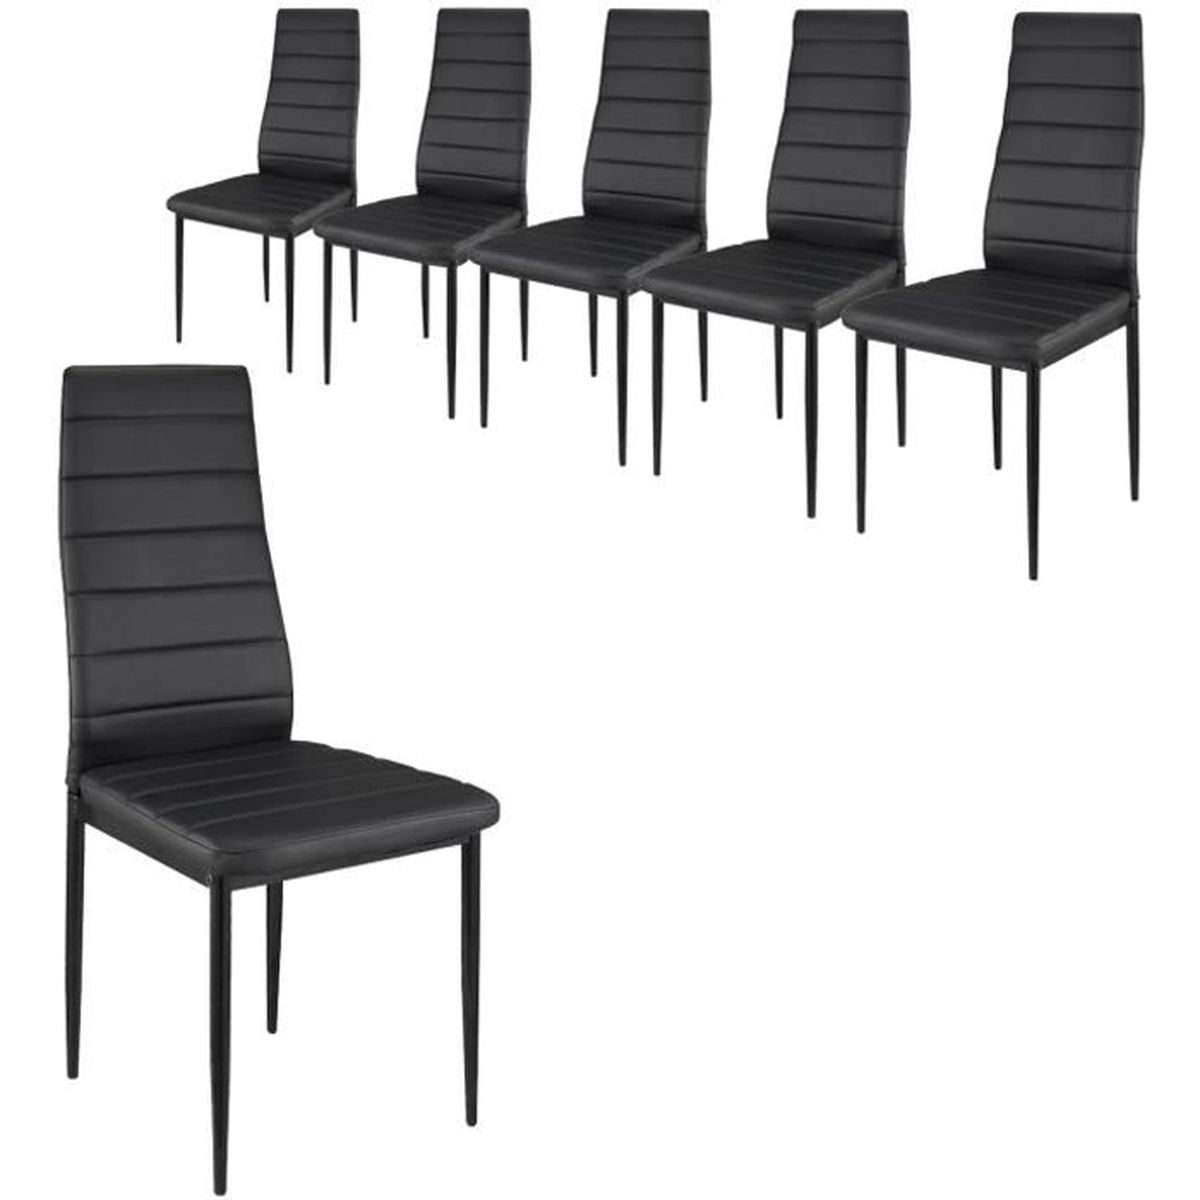 lot de 6 chaises en simili cuir noir achat vente chaise cdiscount. Black Bedroom Furniture Sets. Home Design Ideas